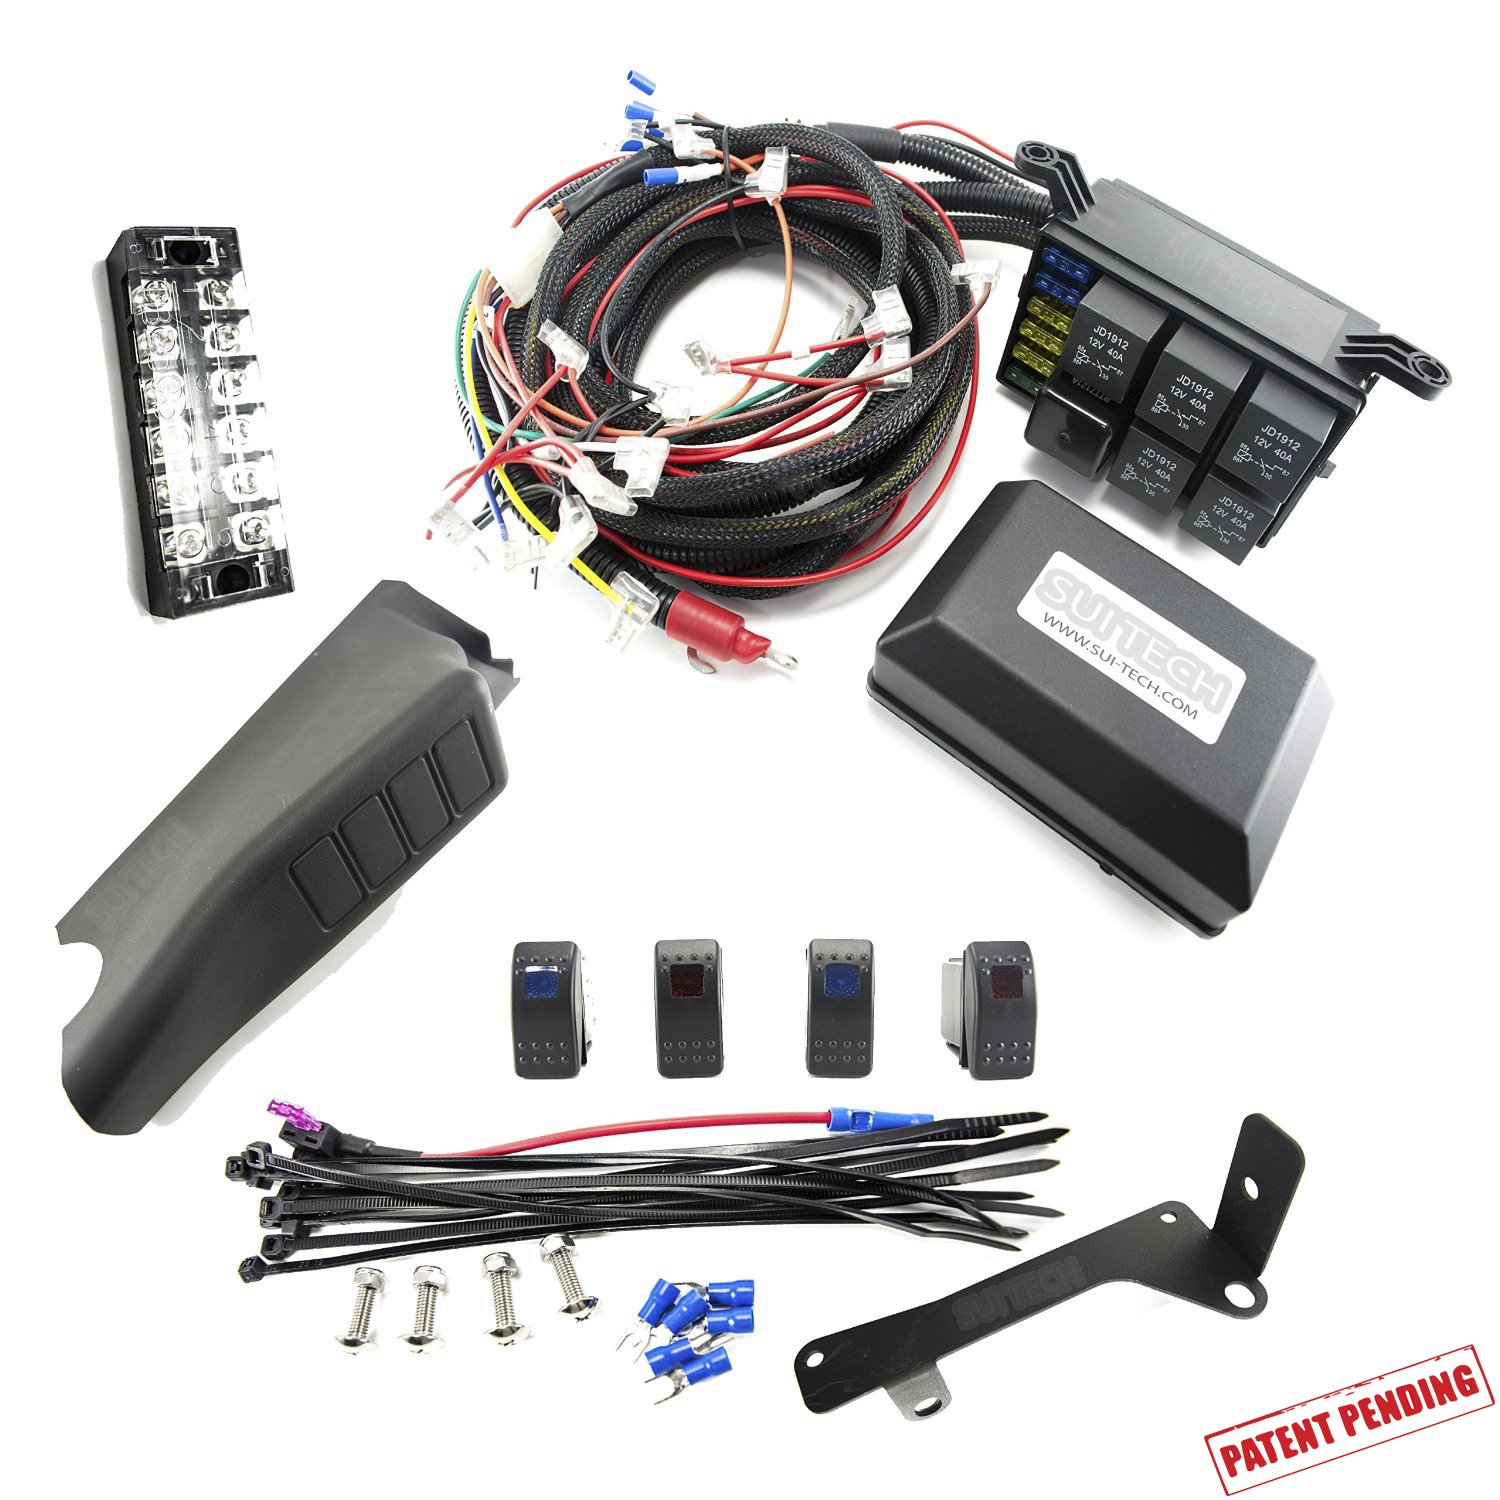 Jeep Jk Control Box Electronic 6 Relay System Module Wiring Harness Kit With Free